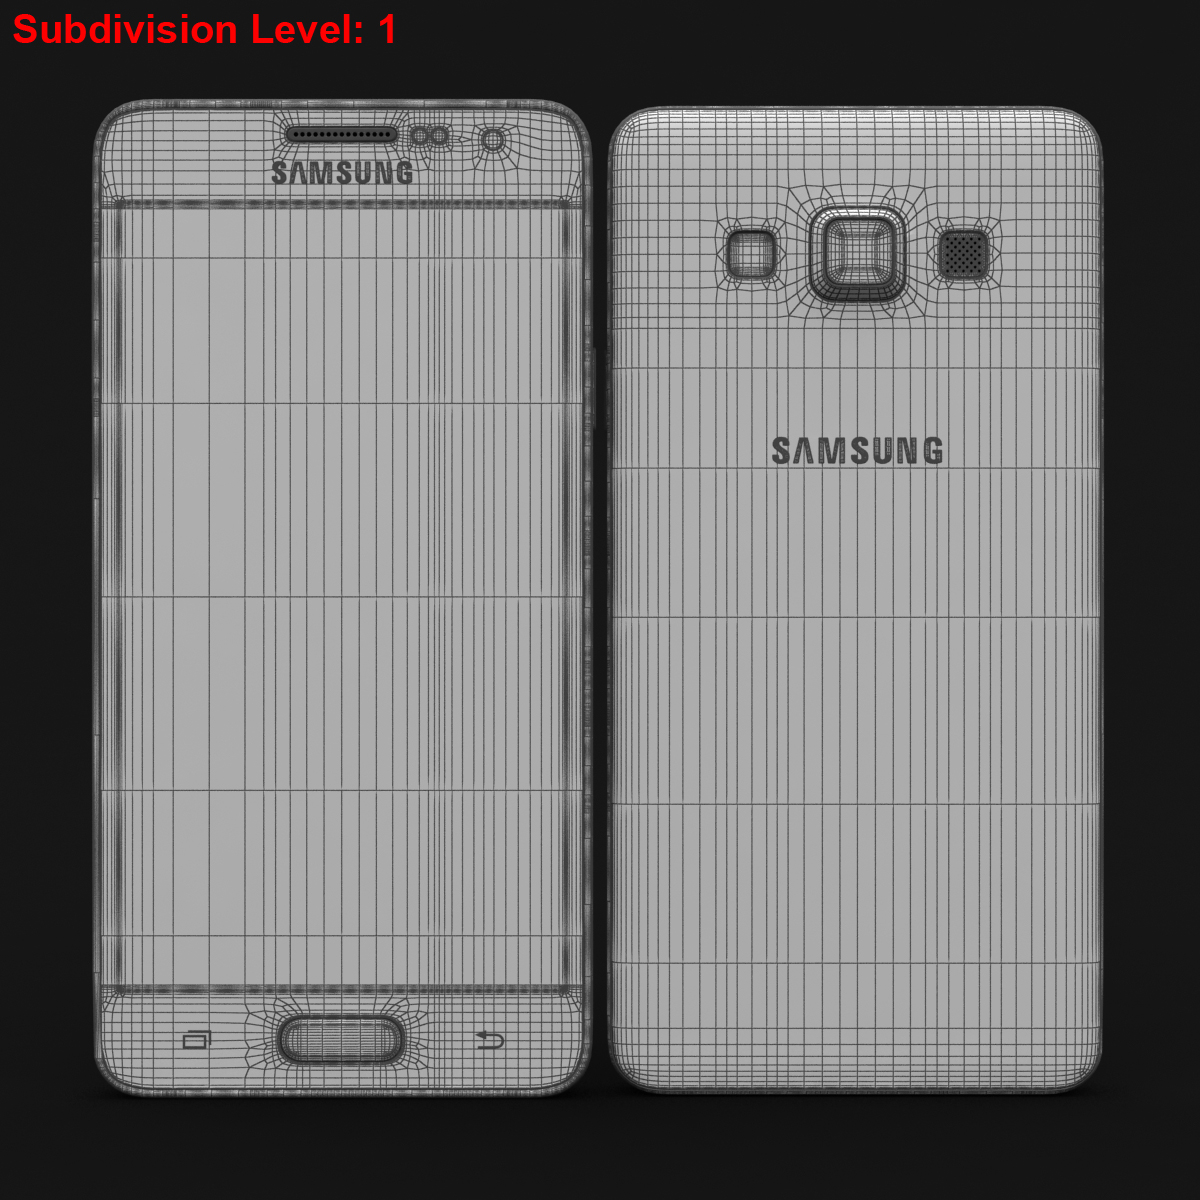 samsung galaxy a3 and a3 duos white 3d model 3ds max fbx c4d obj 206595